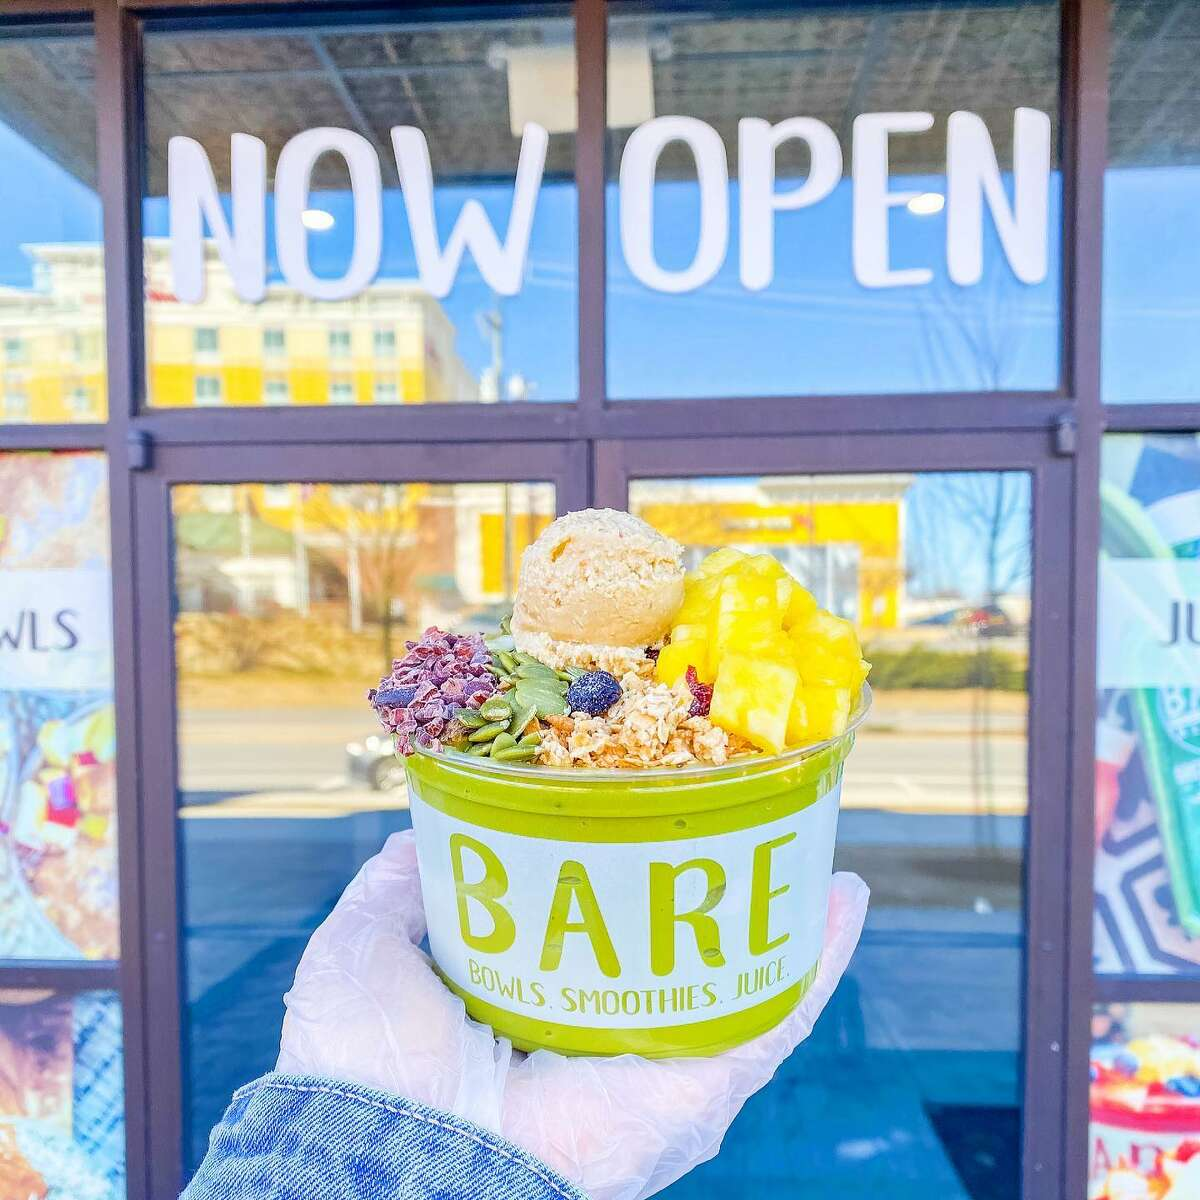 Bare Blends is a local chain of smoothie, juice and bowl, shops. The company's latest location is opening this summer in Glenmont.